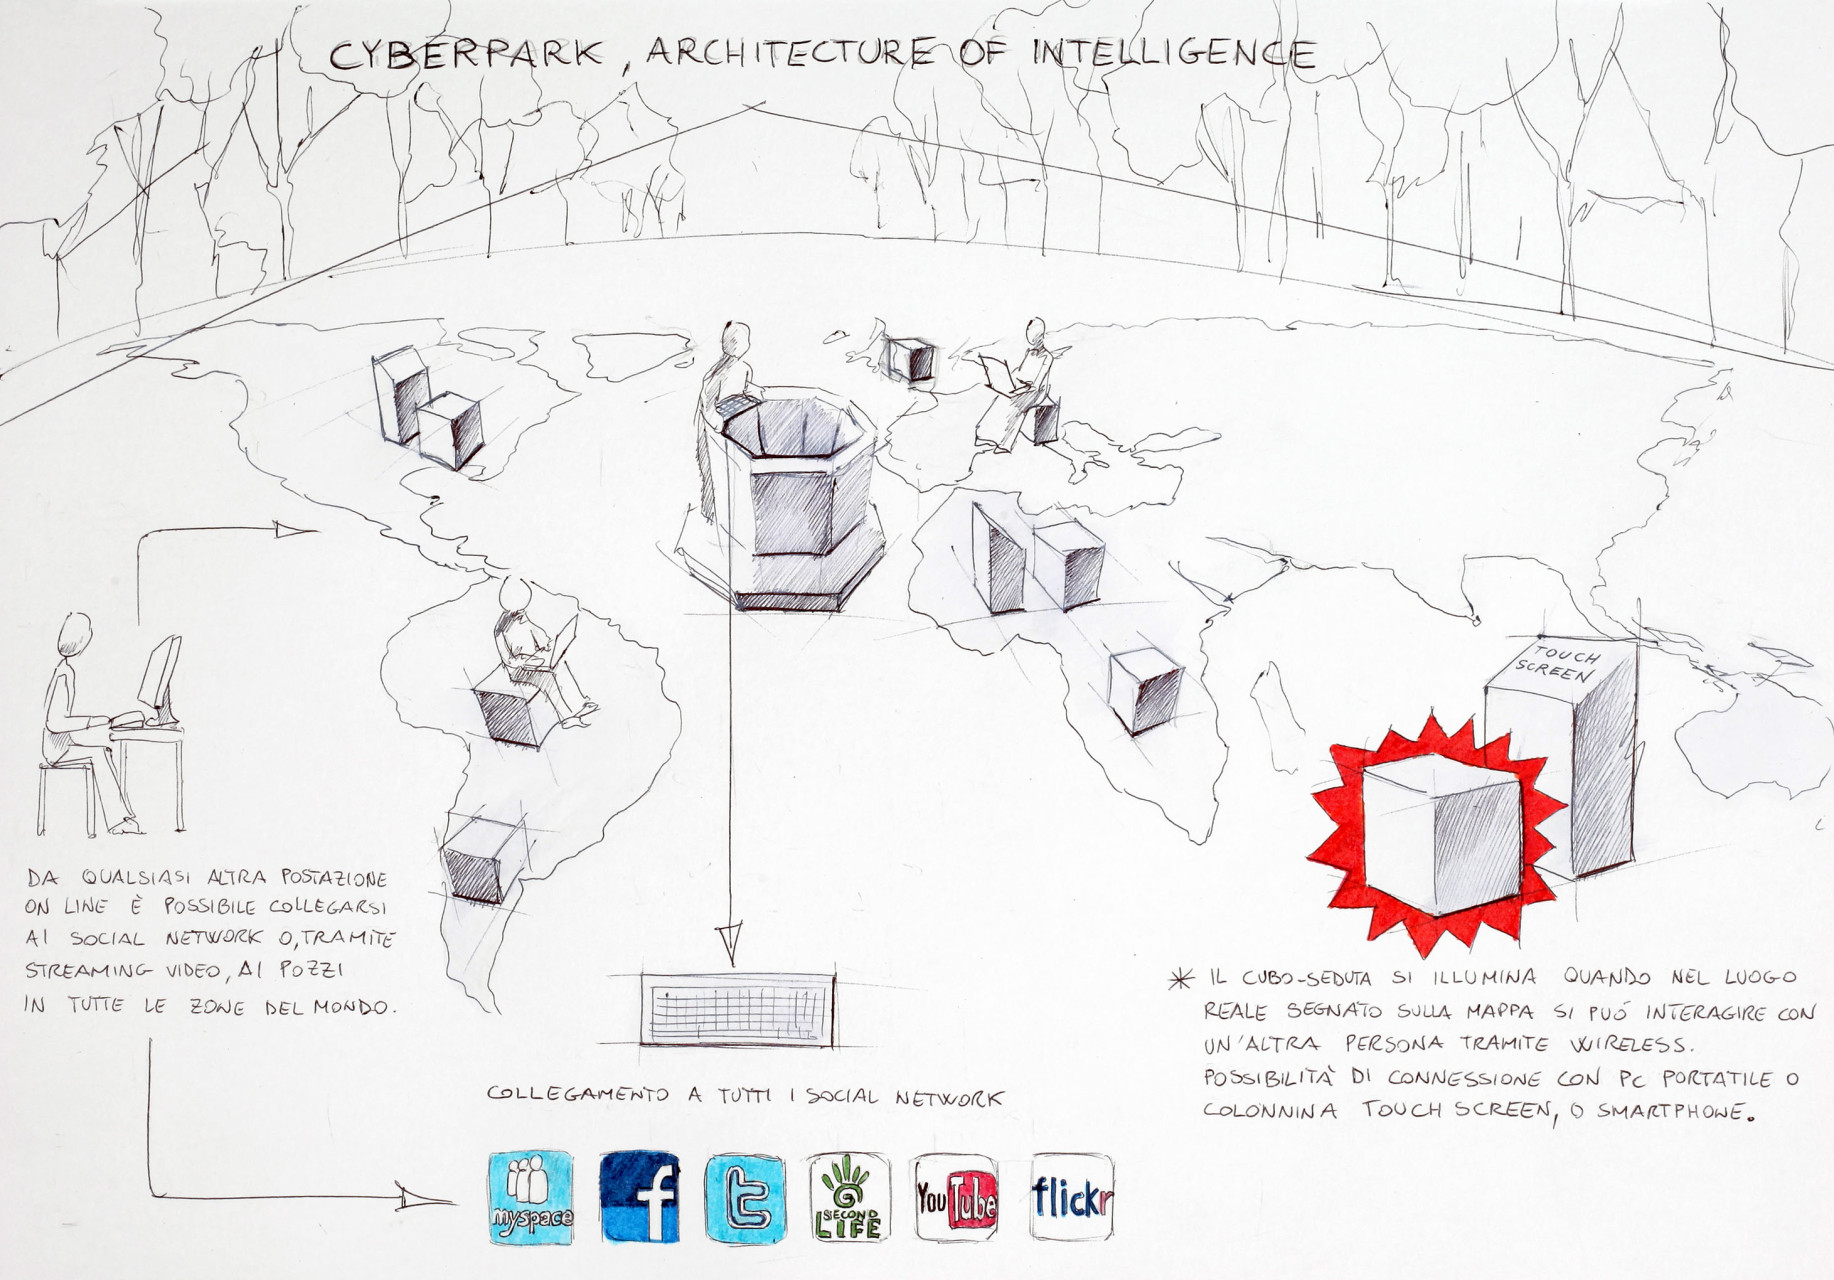 Cyber Park Architecture of Intelligence (Project 2008)